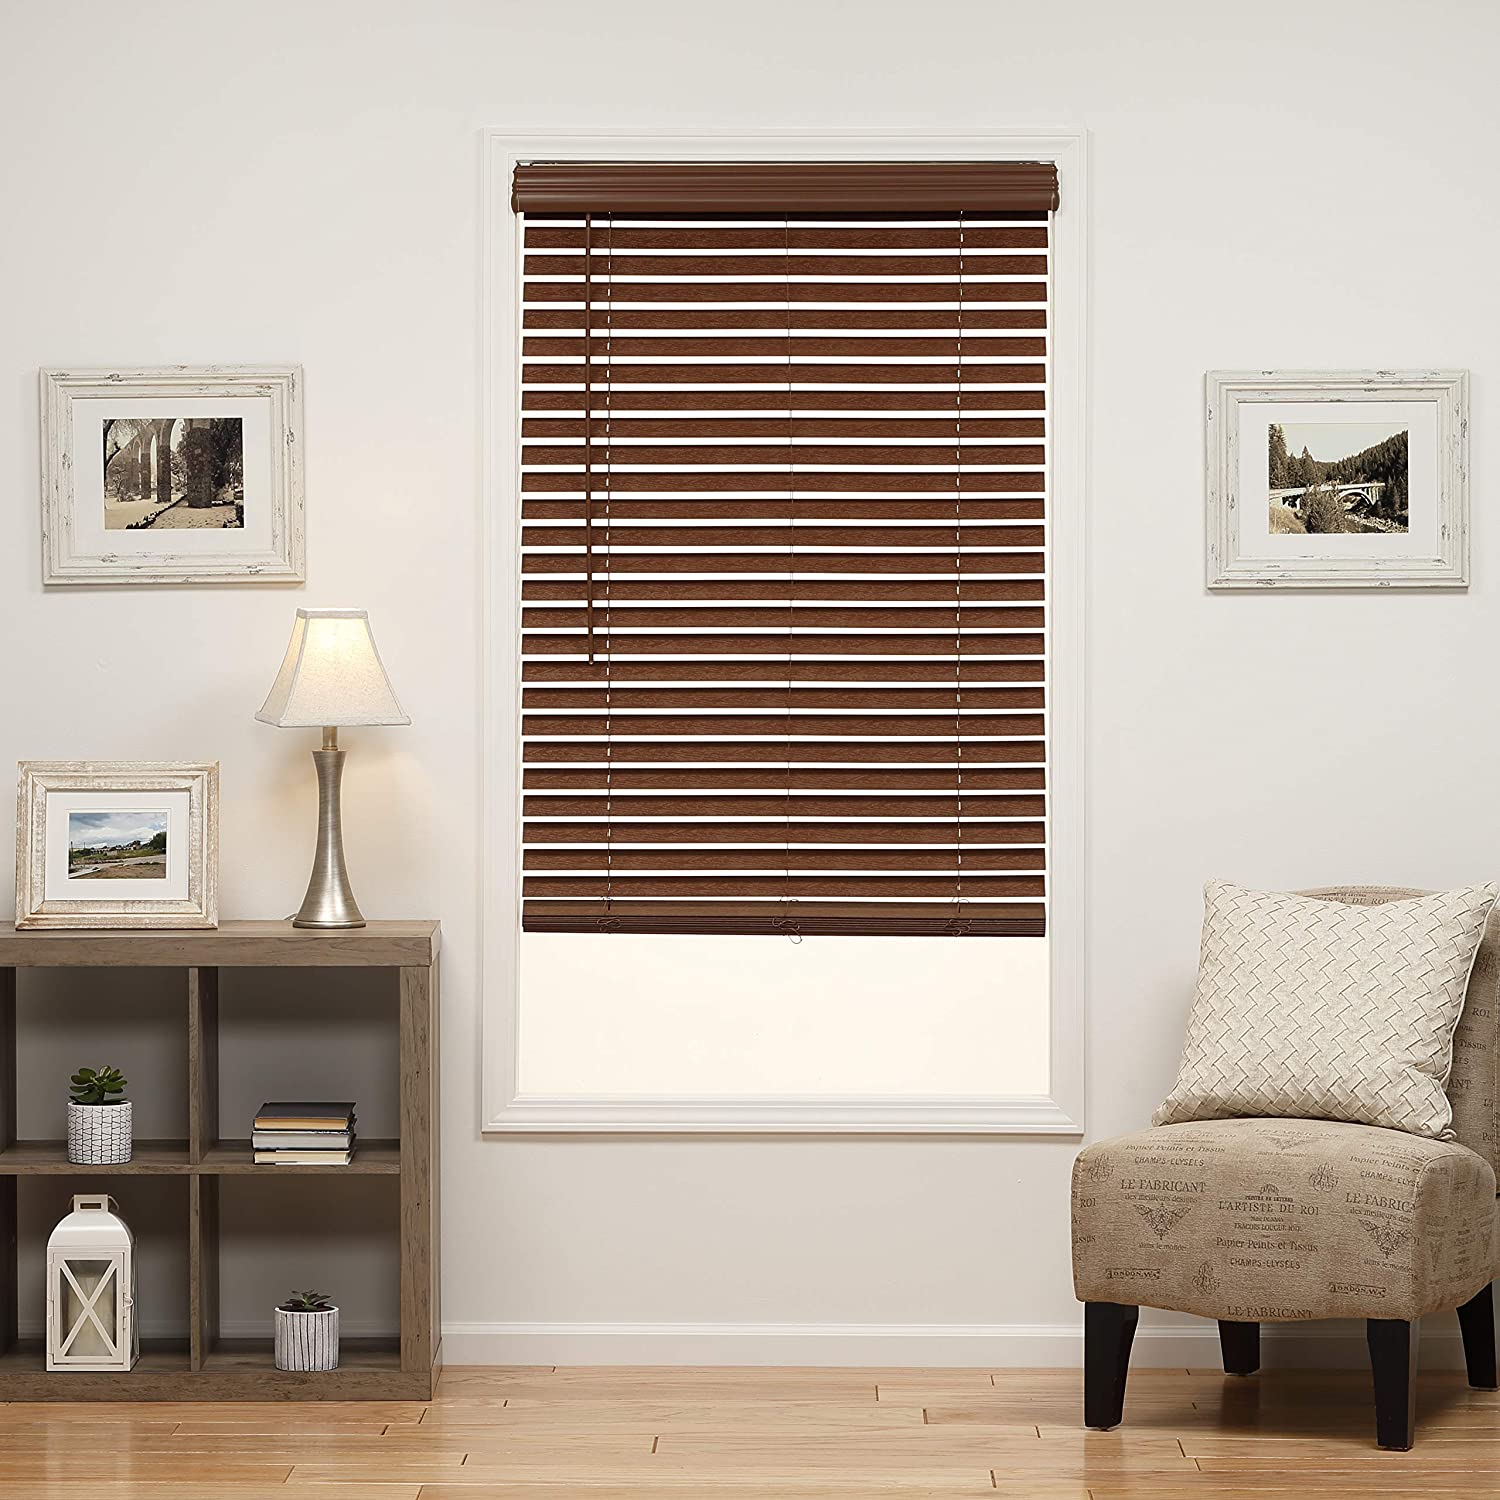 DEZ Furnishings Max 47% Free shipping anywhere in the nation OFF QJBK214640 2 in. 21.5W Wood Blind Cordless Faux